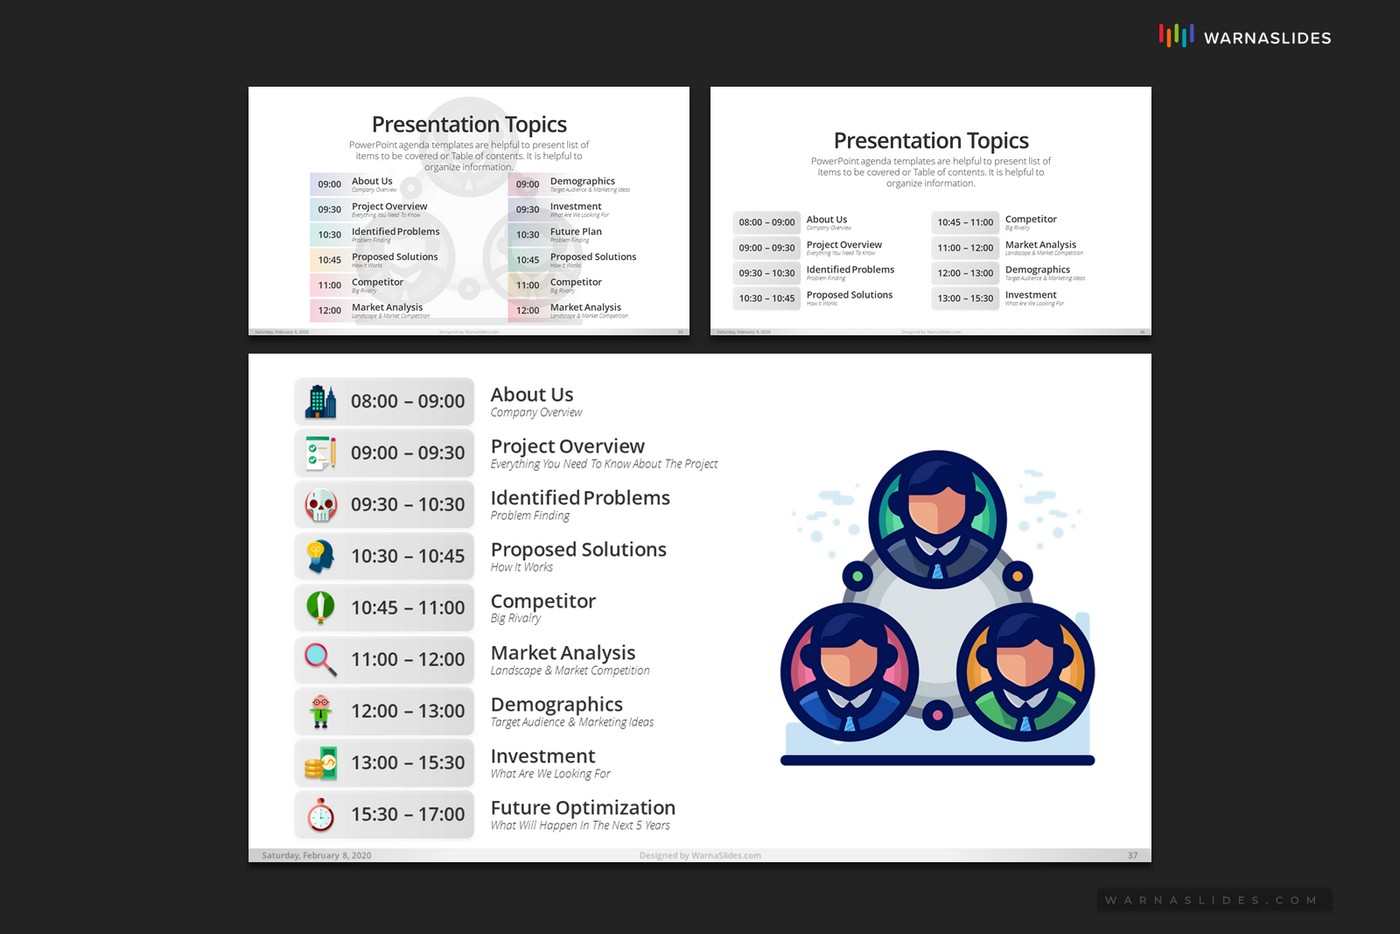 Agenda-Meeting-PowerPoint-Template-2020-for-Business-Pitch-Deck-Professional-Creative-Presentation-by-Warna-Slides-012